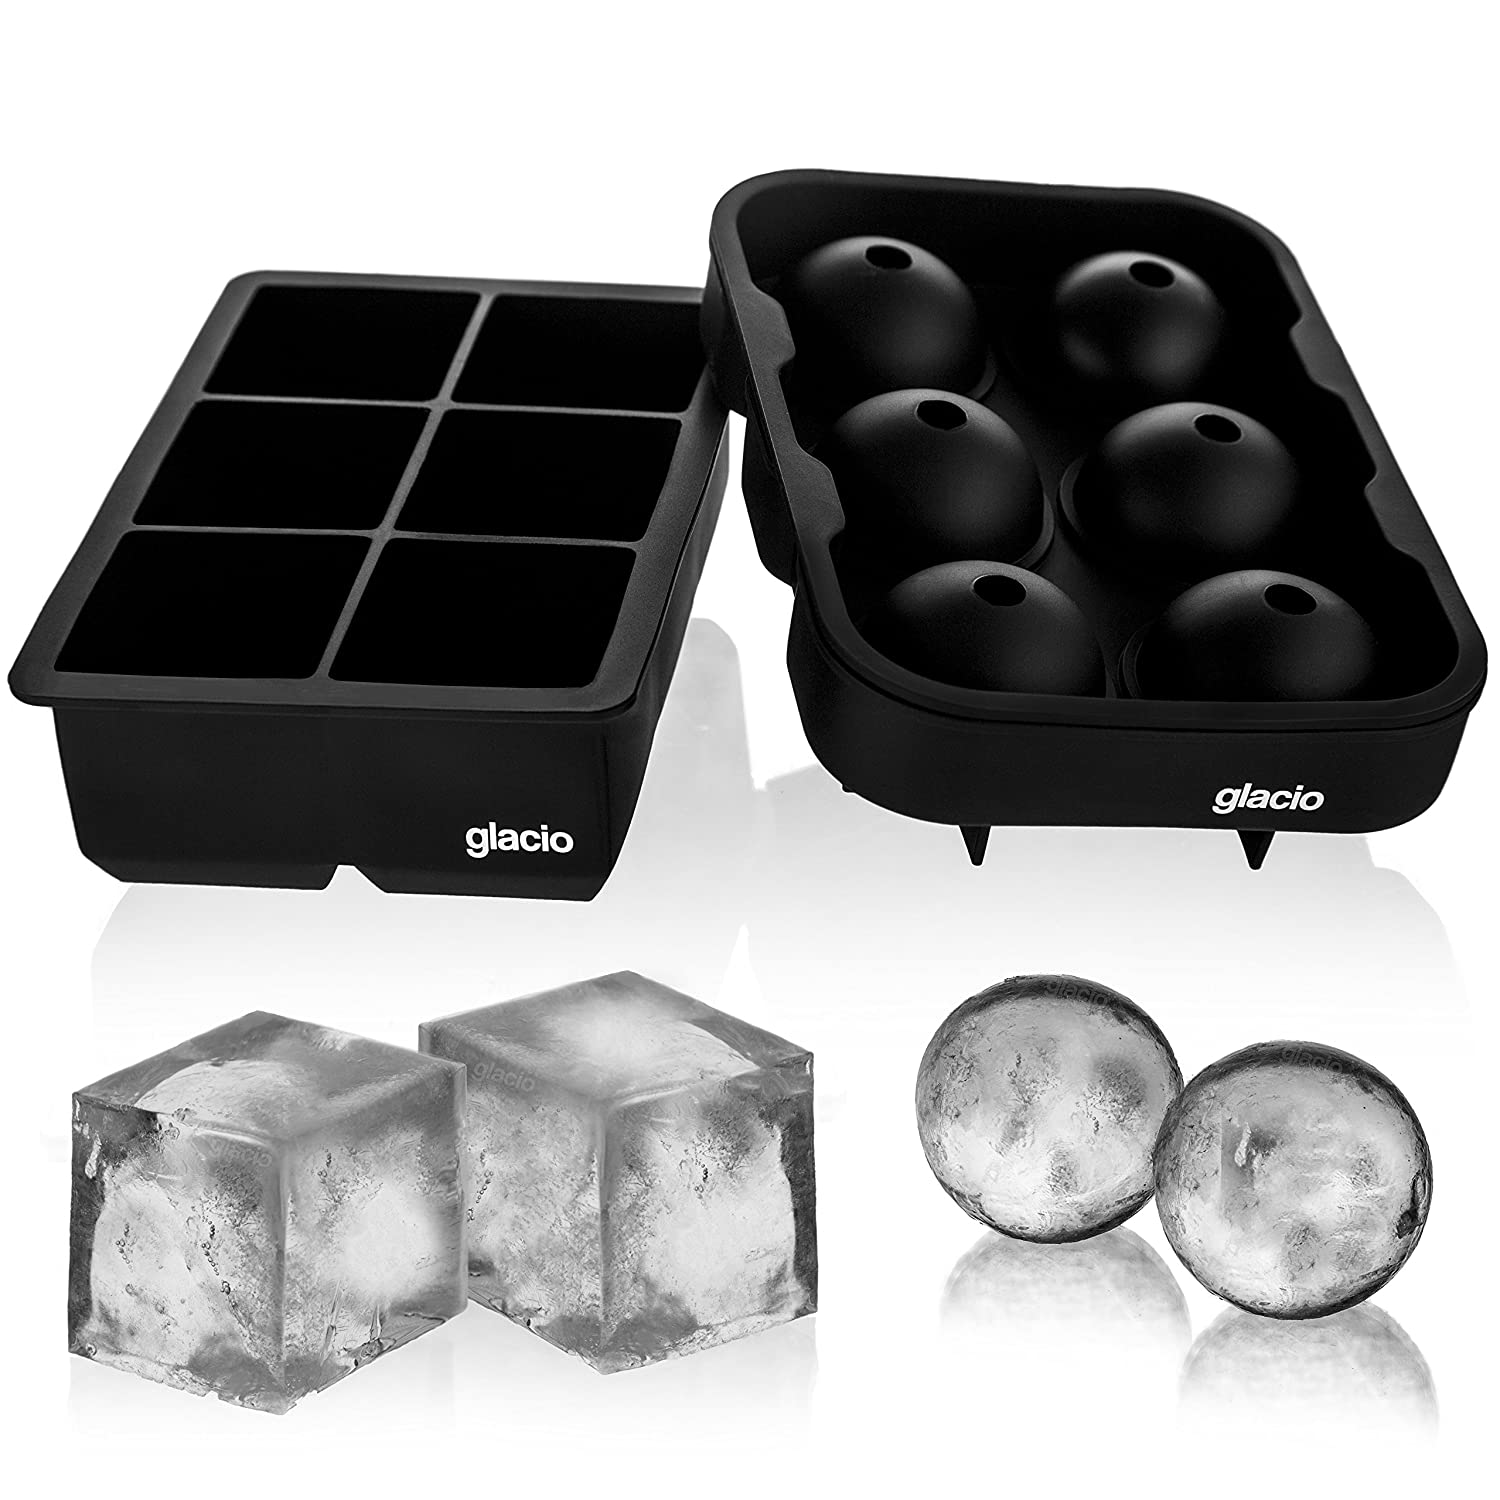 glacio Ice Cube Trays Silicone Combo Mold - Set of 2, Sphere Ice Ball Maker with Lid & Large Square Molds, Reusable and BPA Free